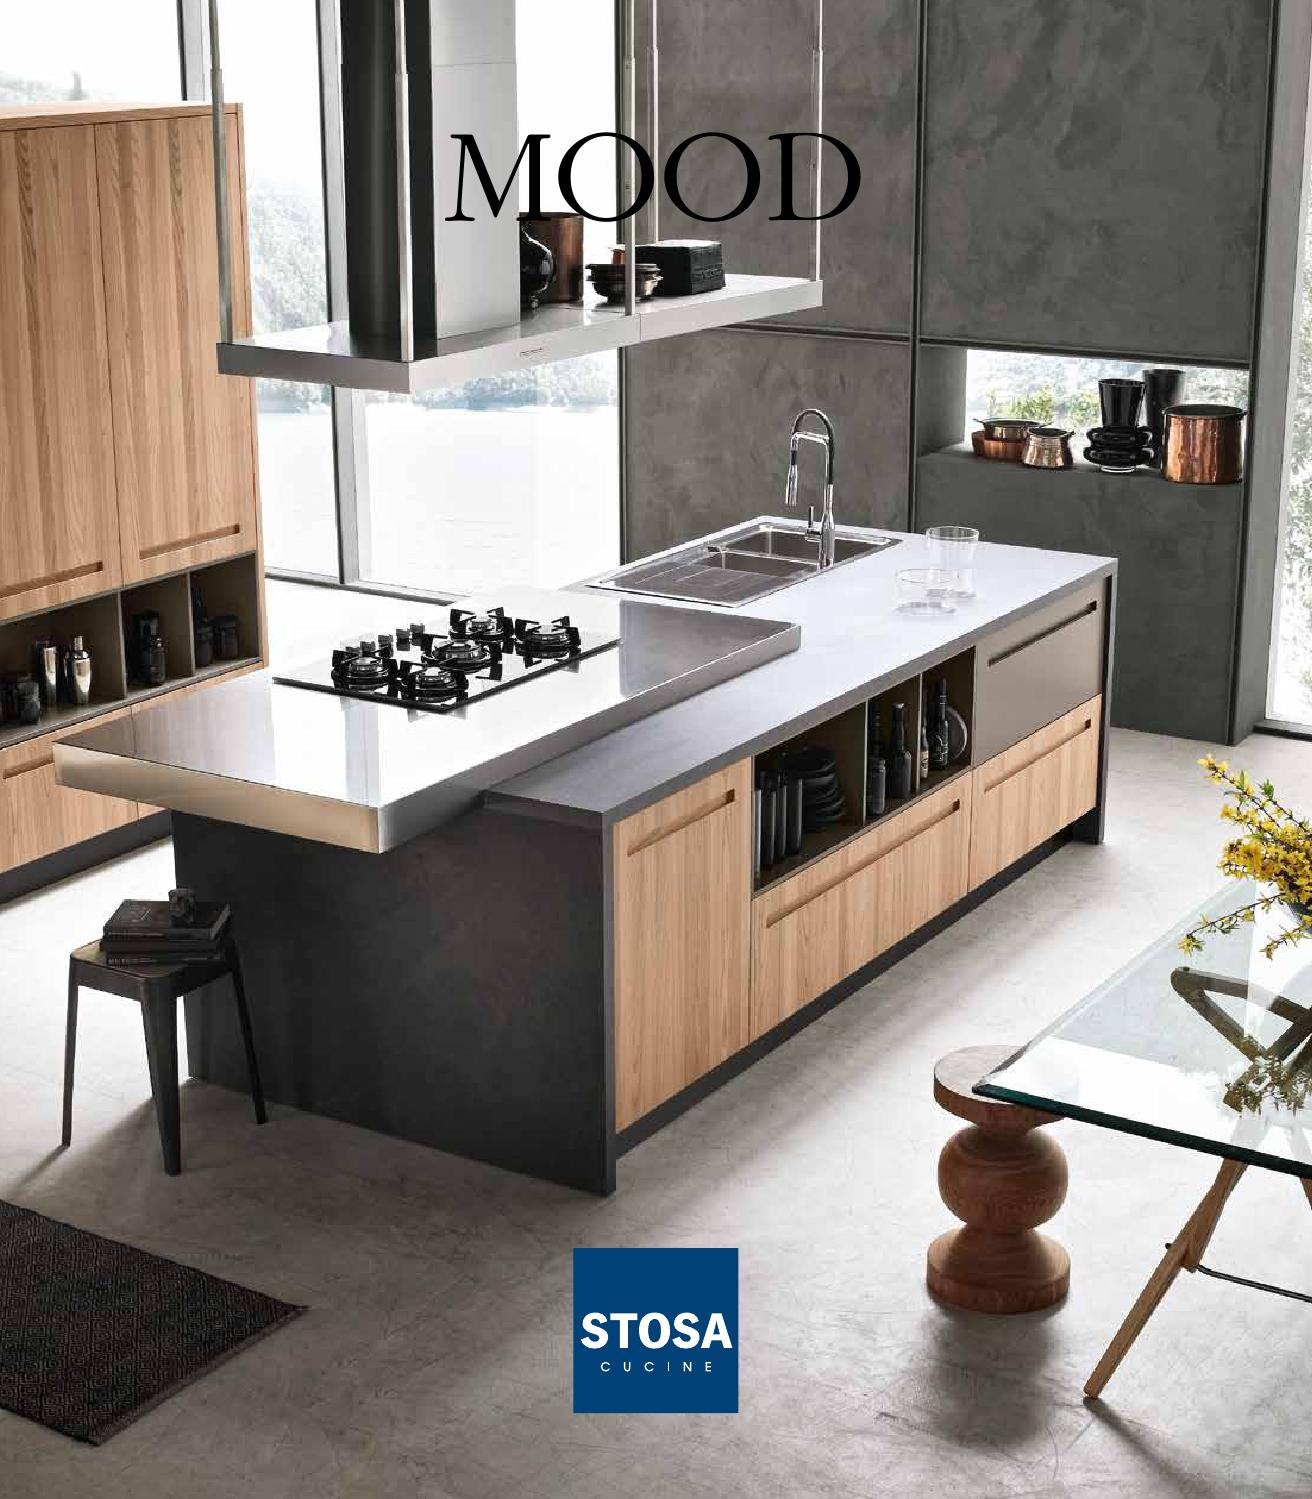 Catalogo cucine moderne stosa mood by STOSA Cucine - issuu